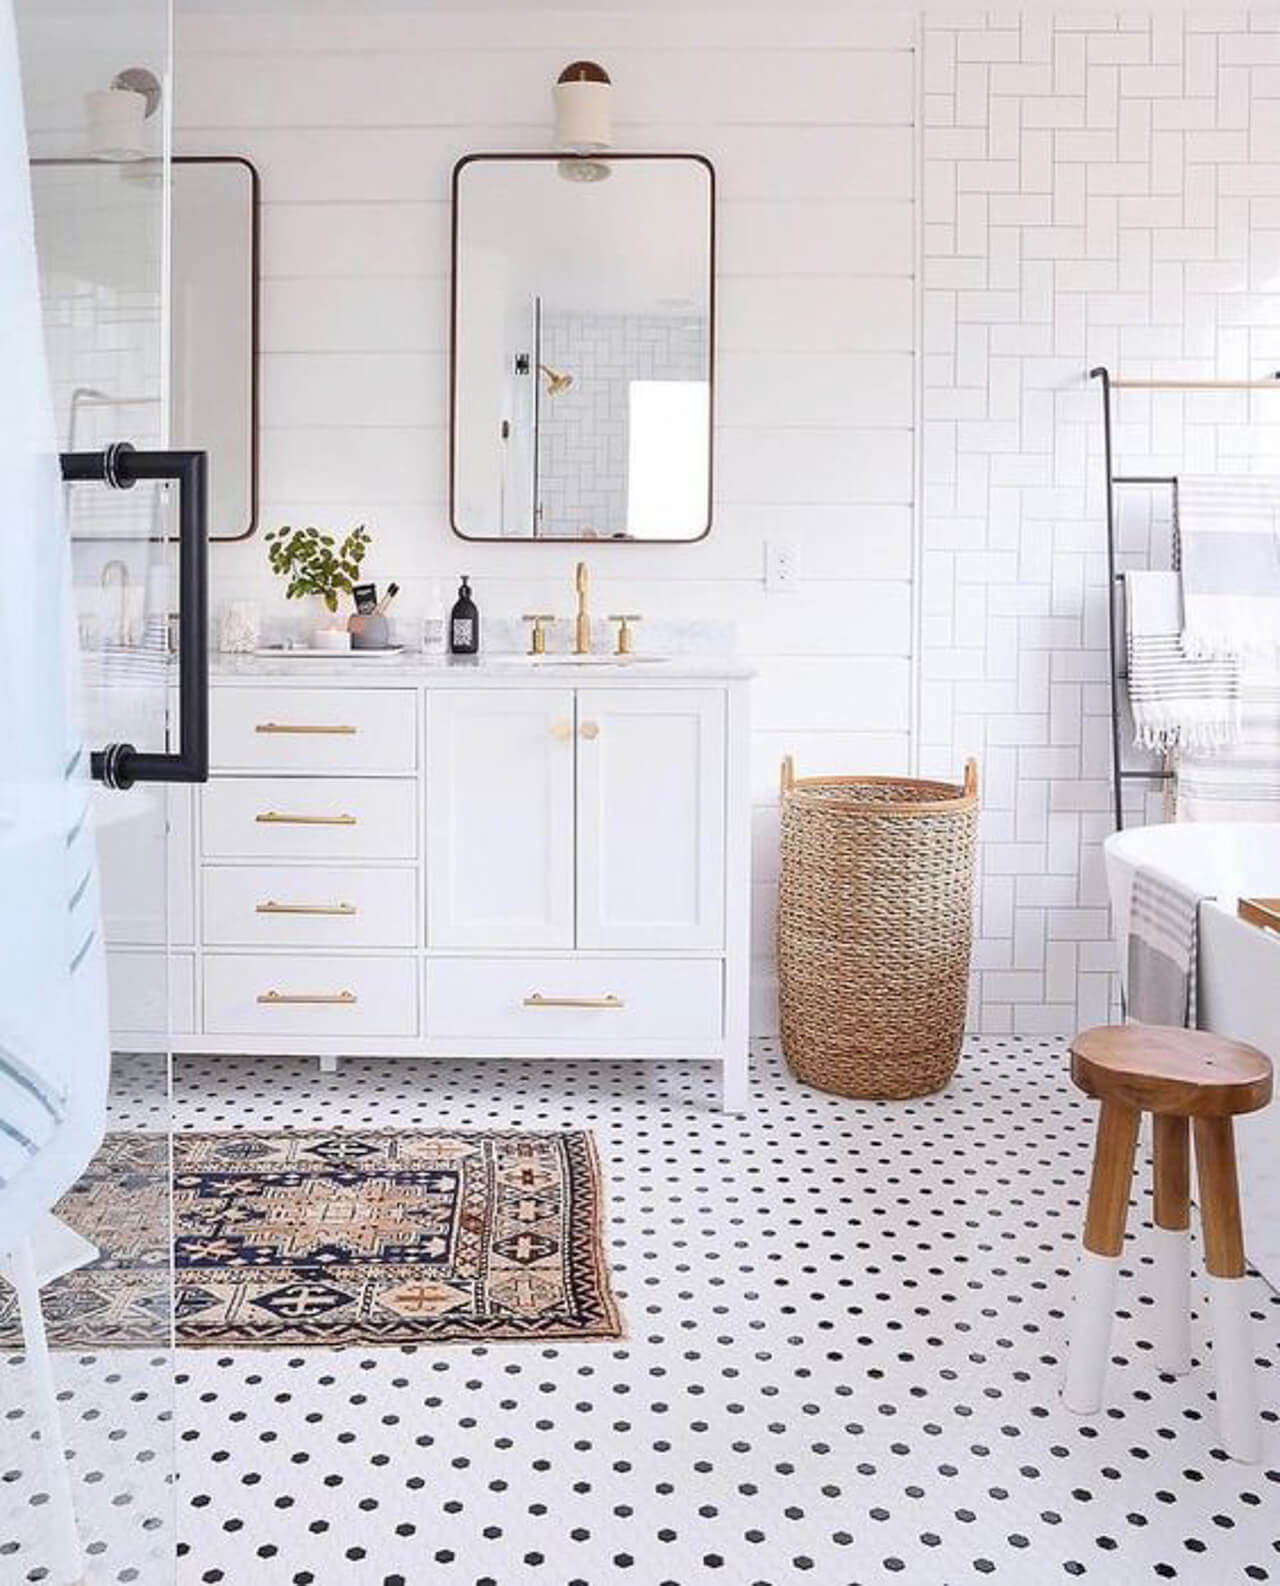 The white subway tile is so chic! - M Loves M @marmar